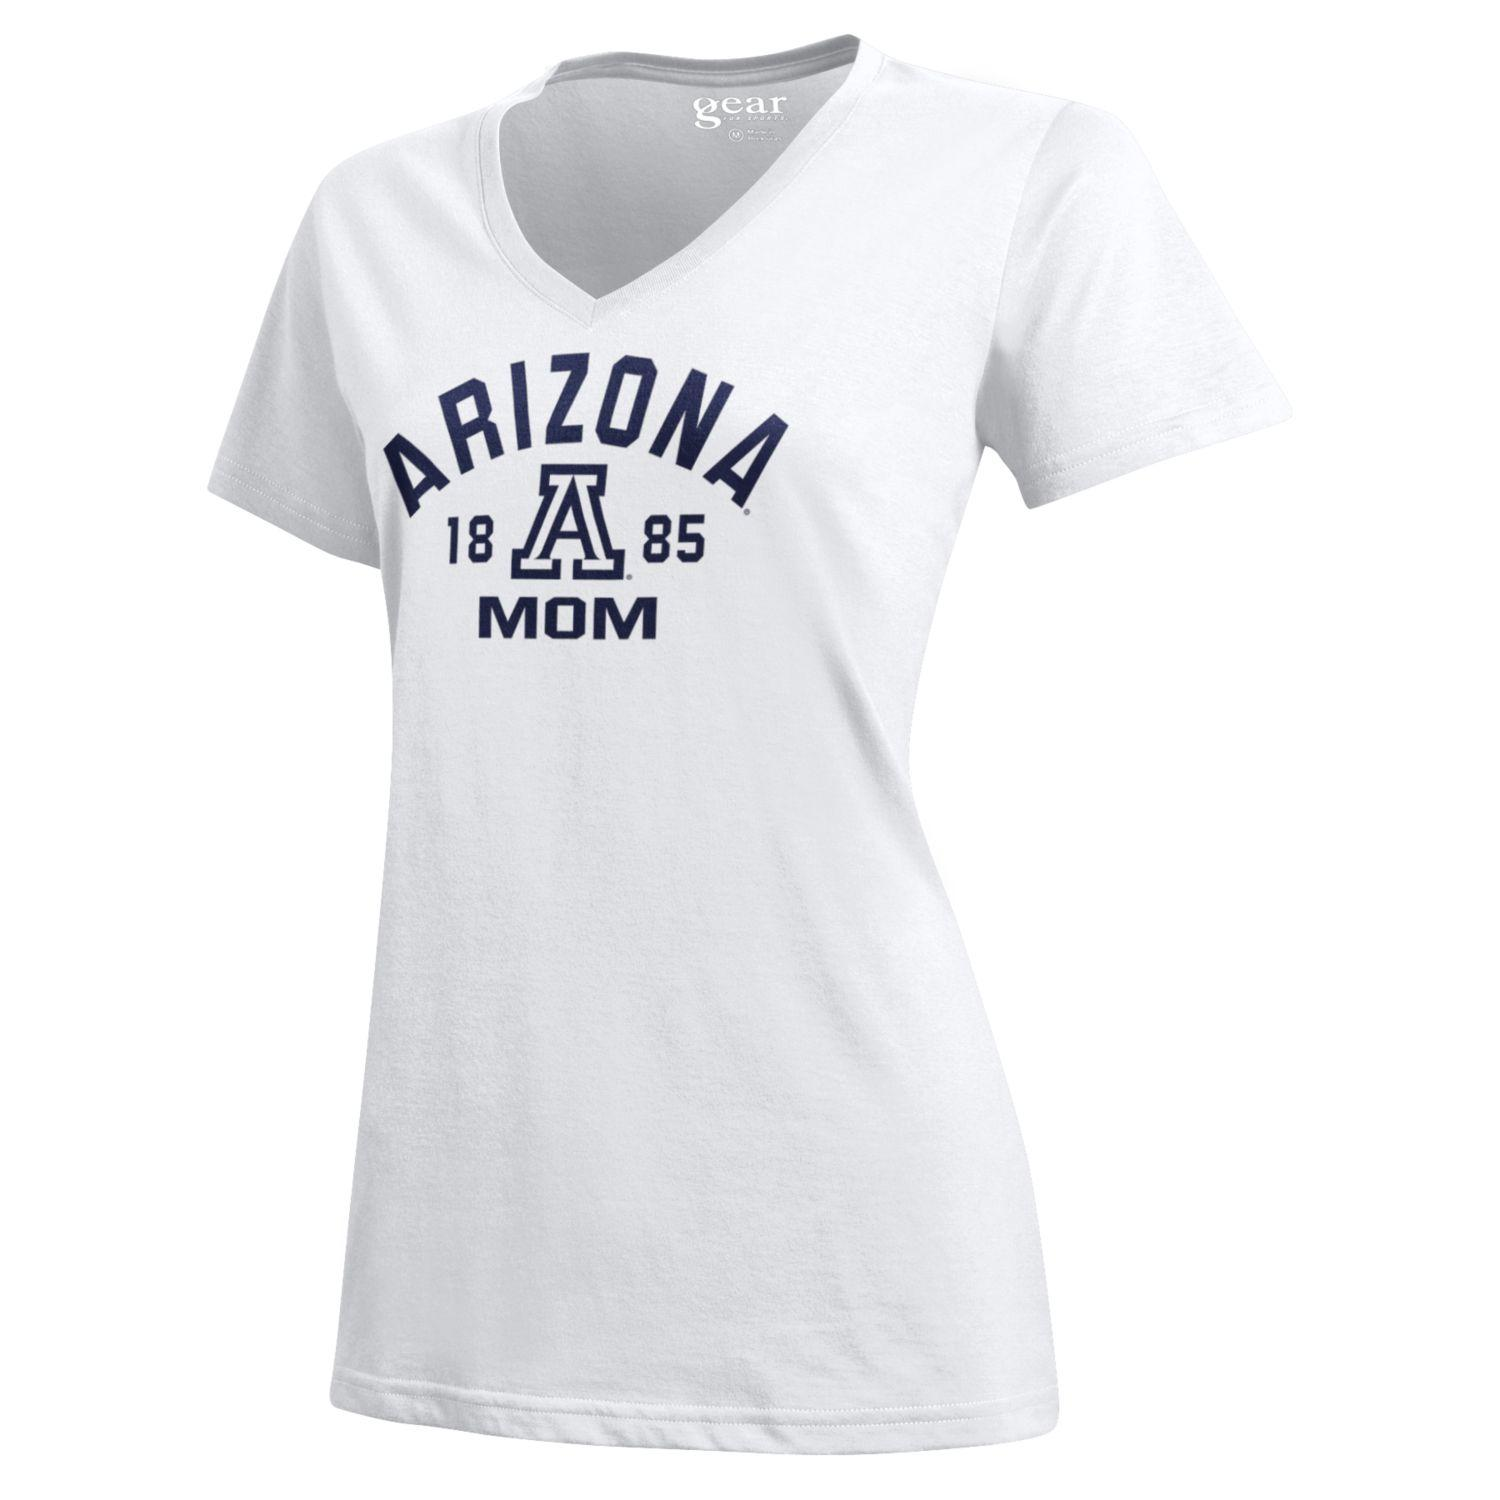 Cover Image For Gear: Arizona 'A' 1885 Mom T-Shirt - White